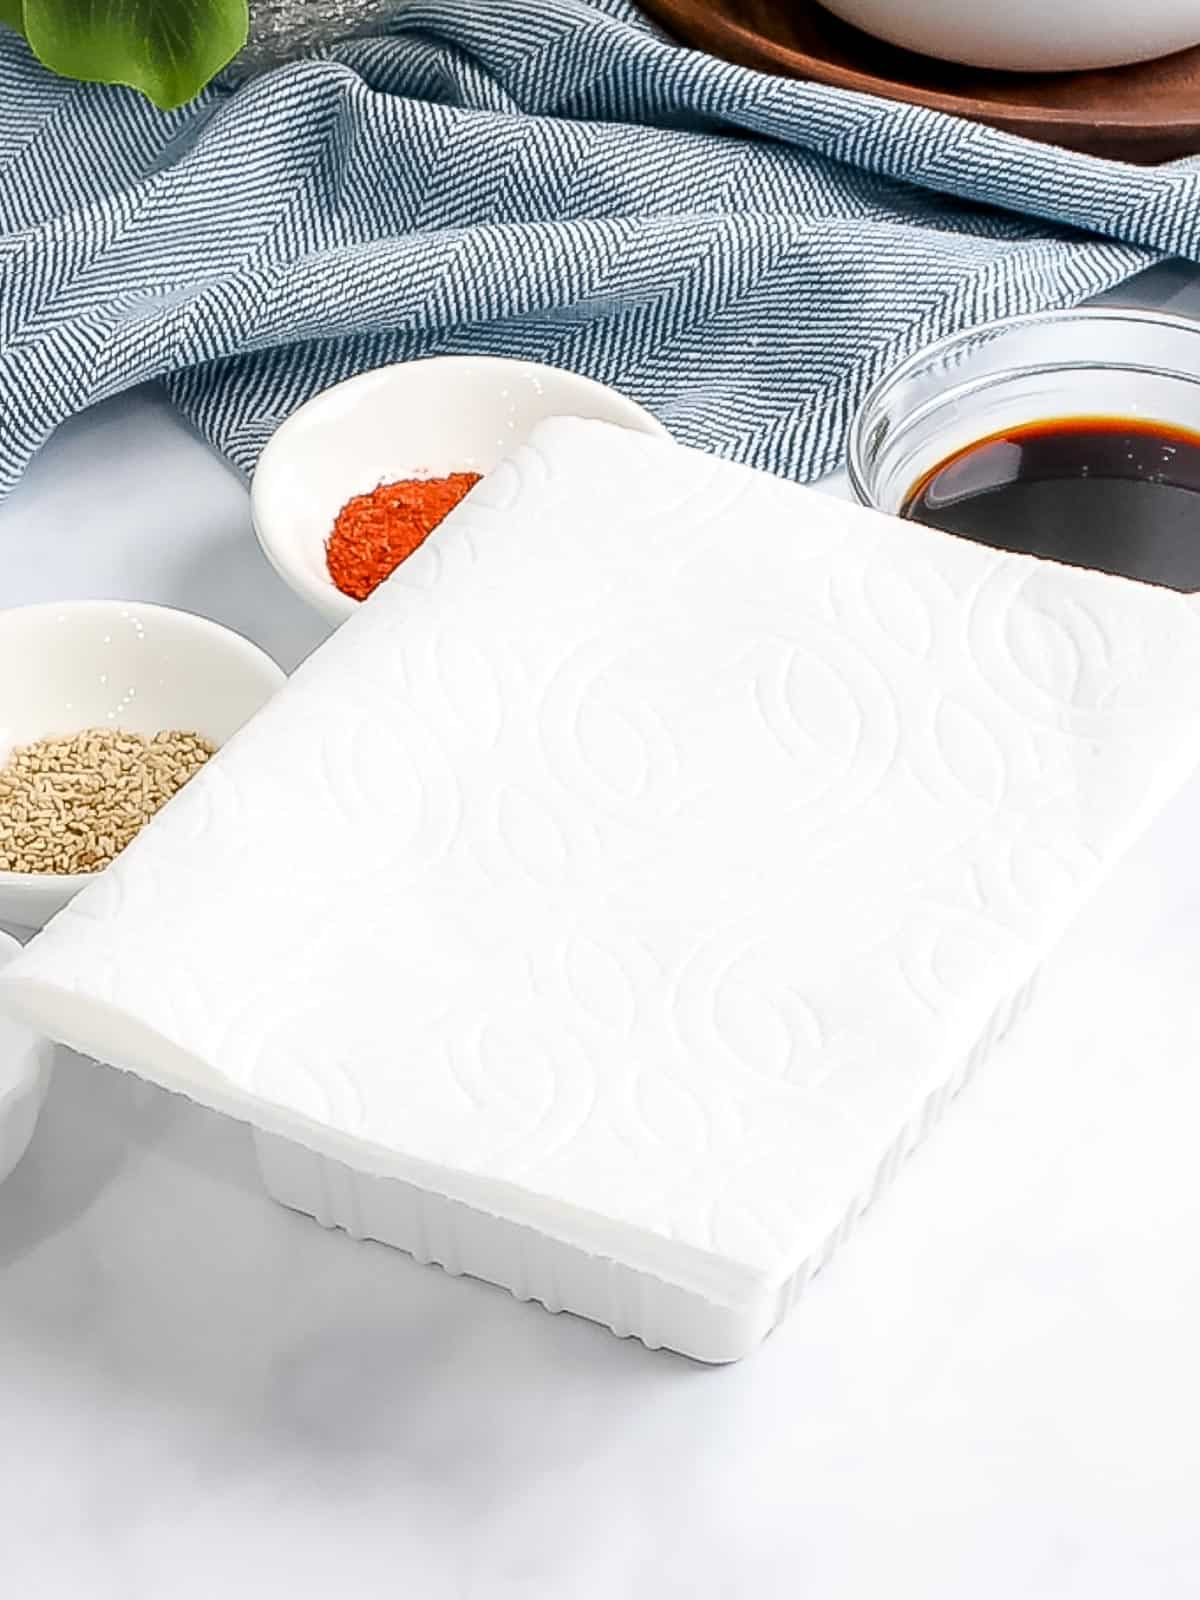 Paper towel laid on top of silken tofu container.